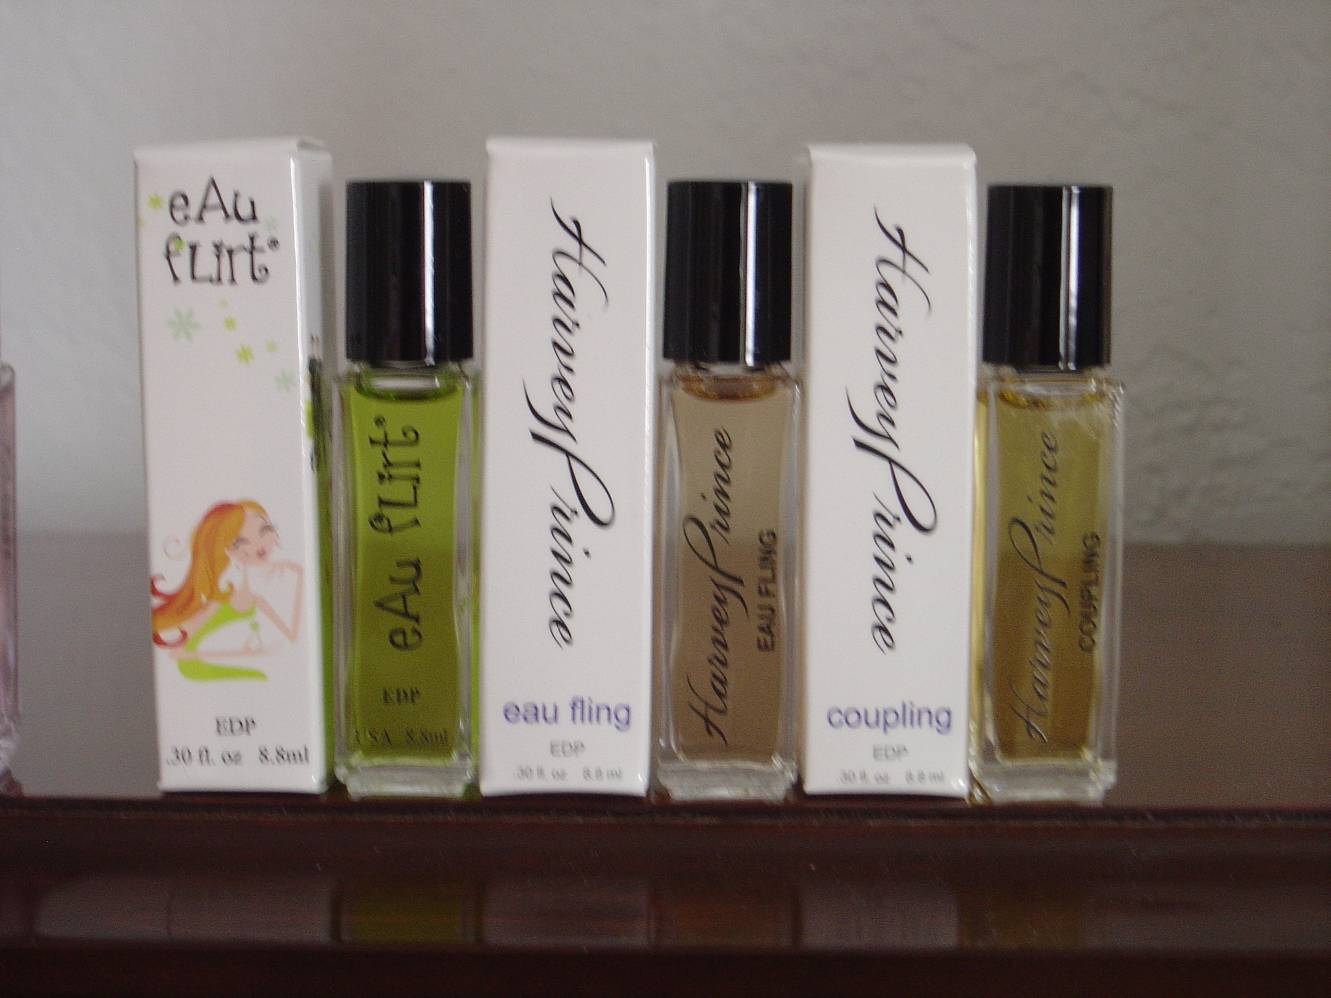 Harvey Prince Natural Perfumes trio of mini perfumes